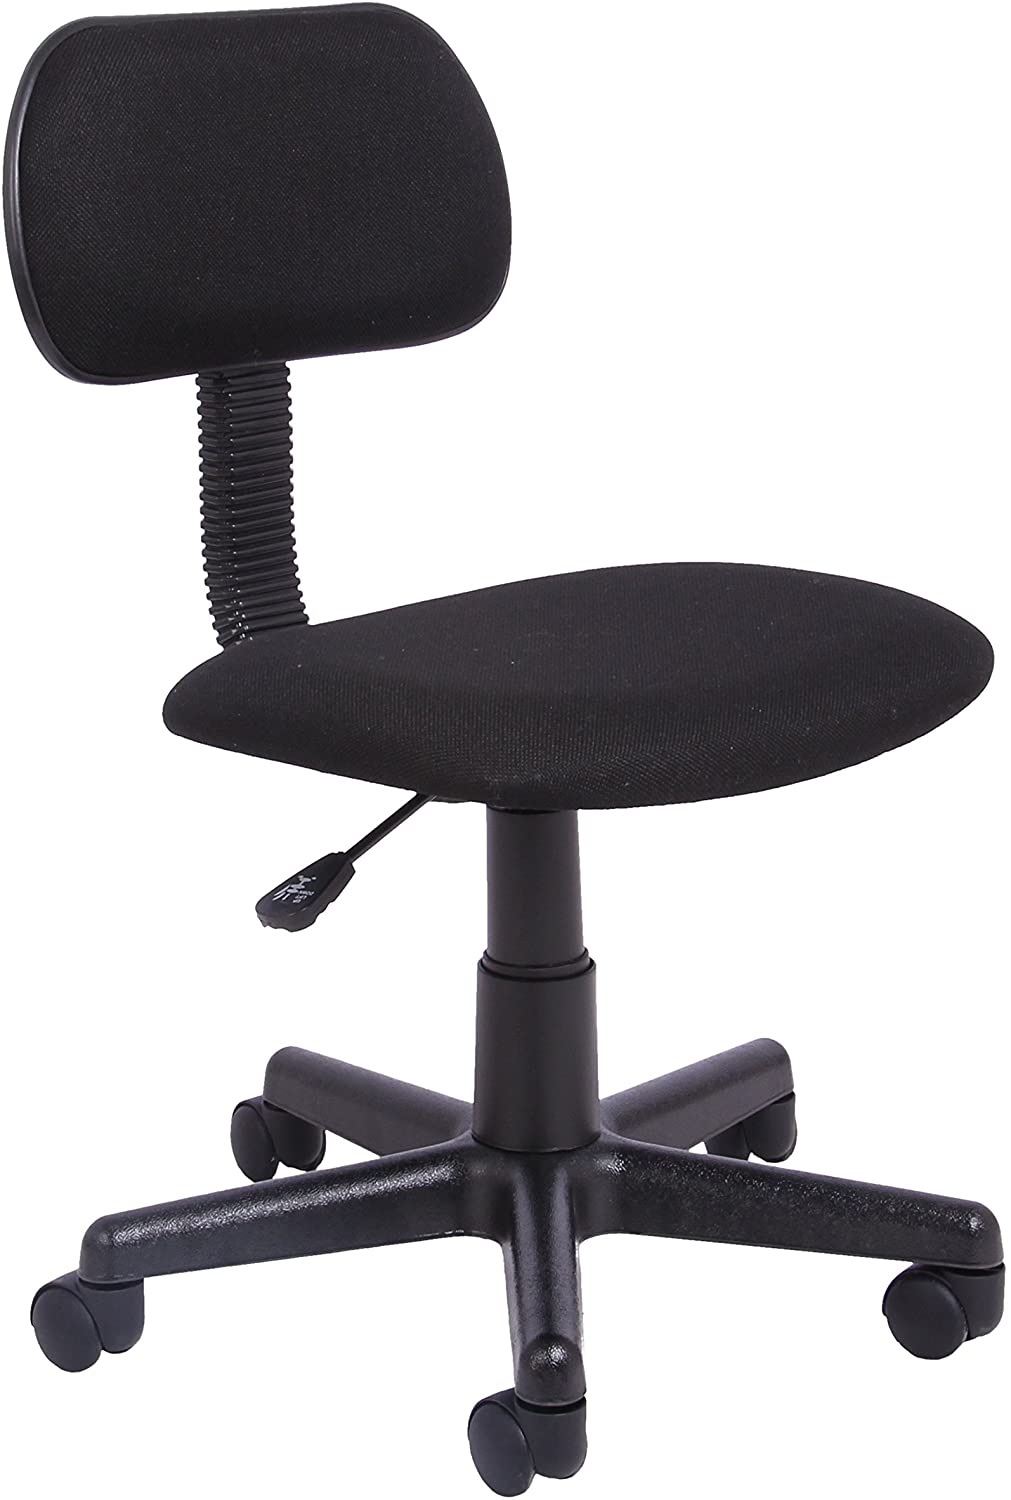 Office Essential Affordable No-arms Office Chair